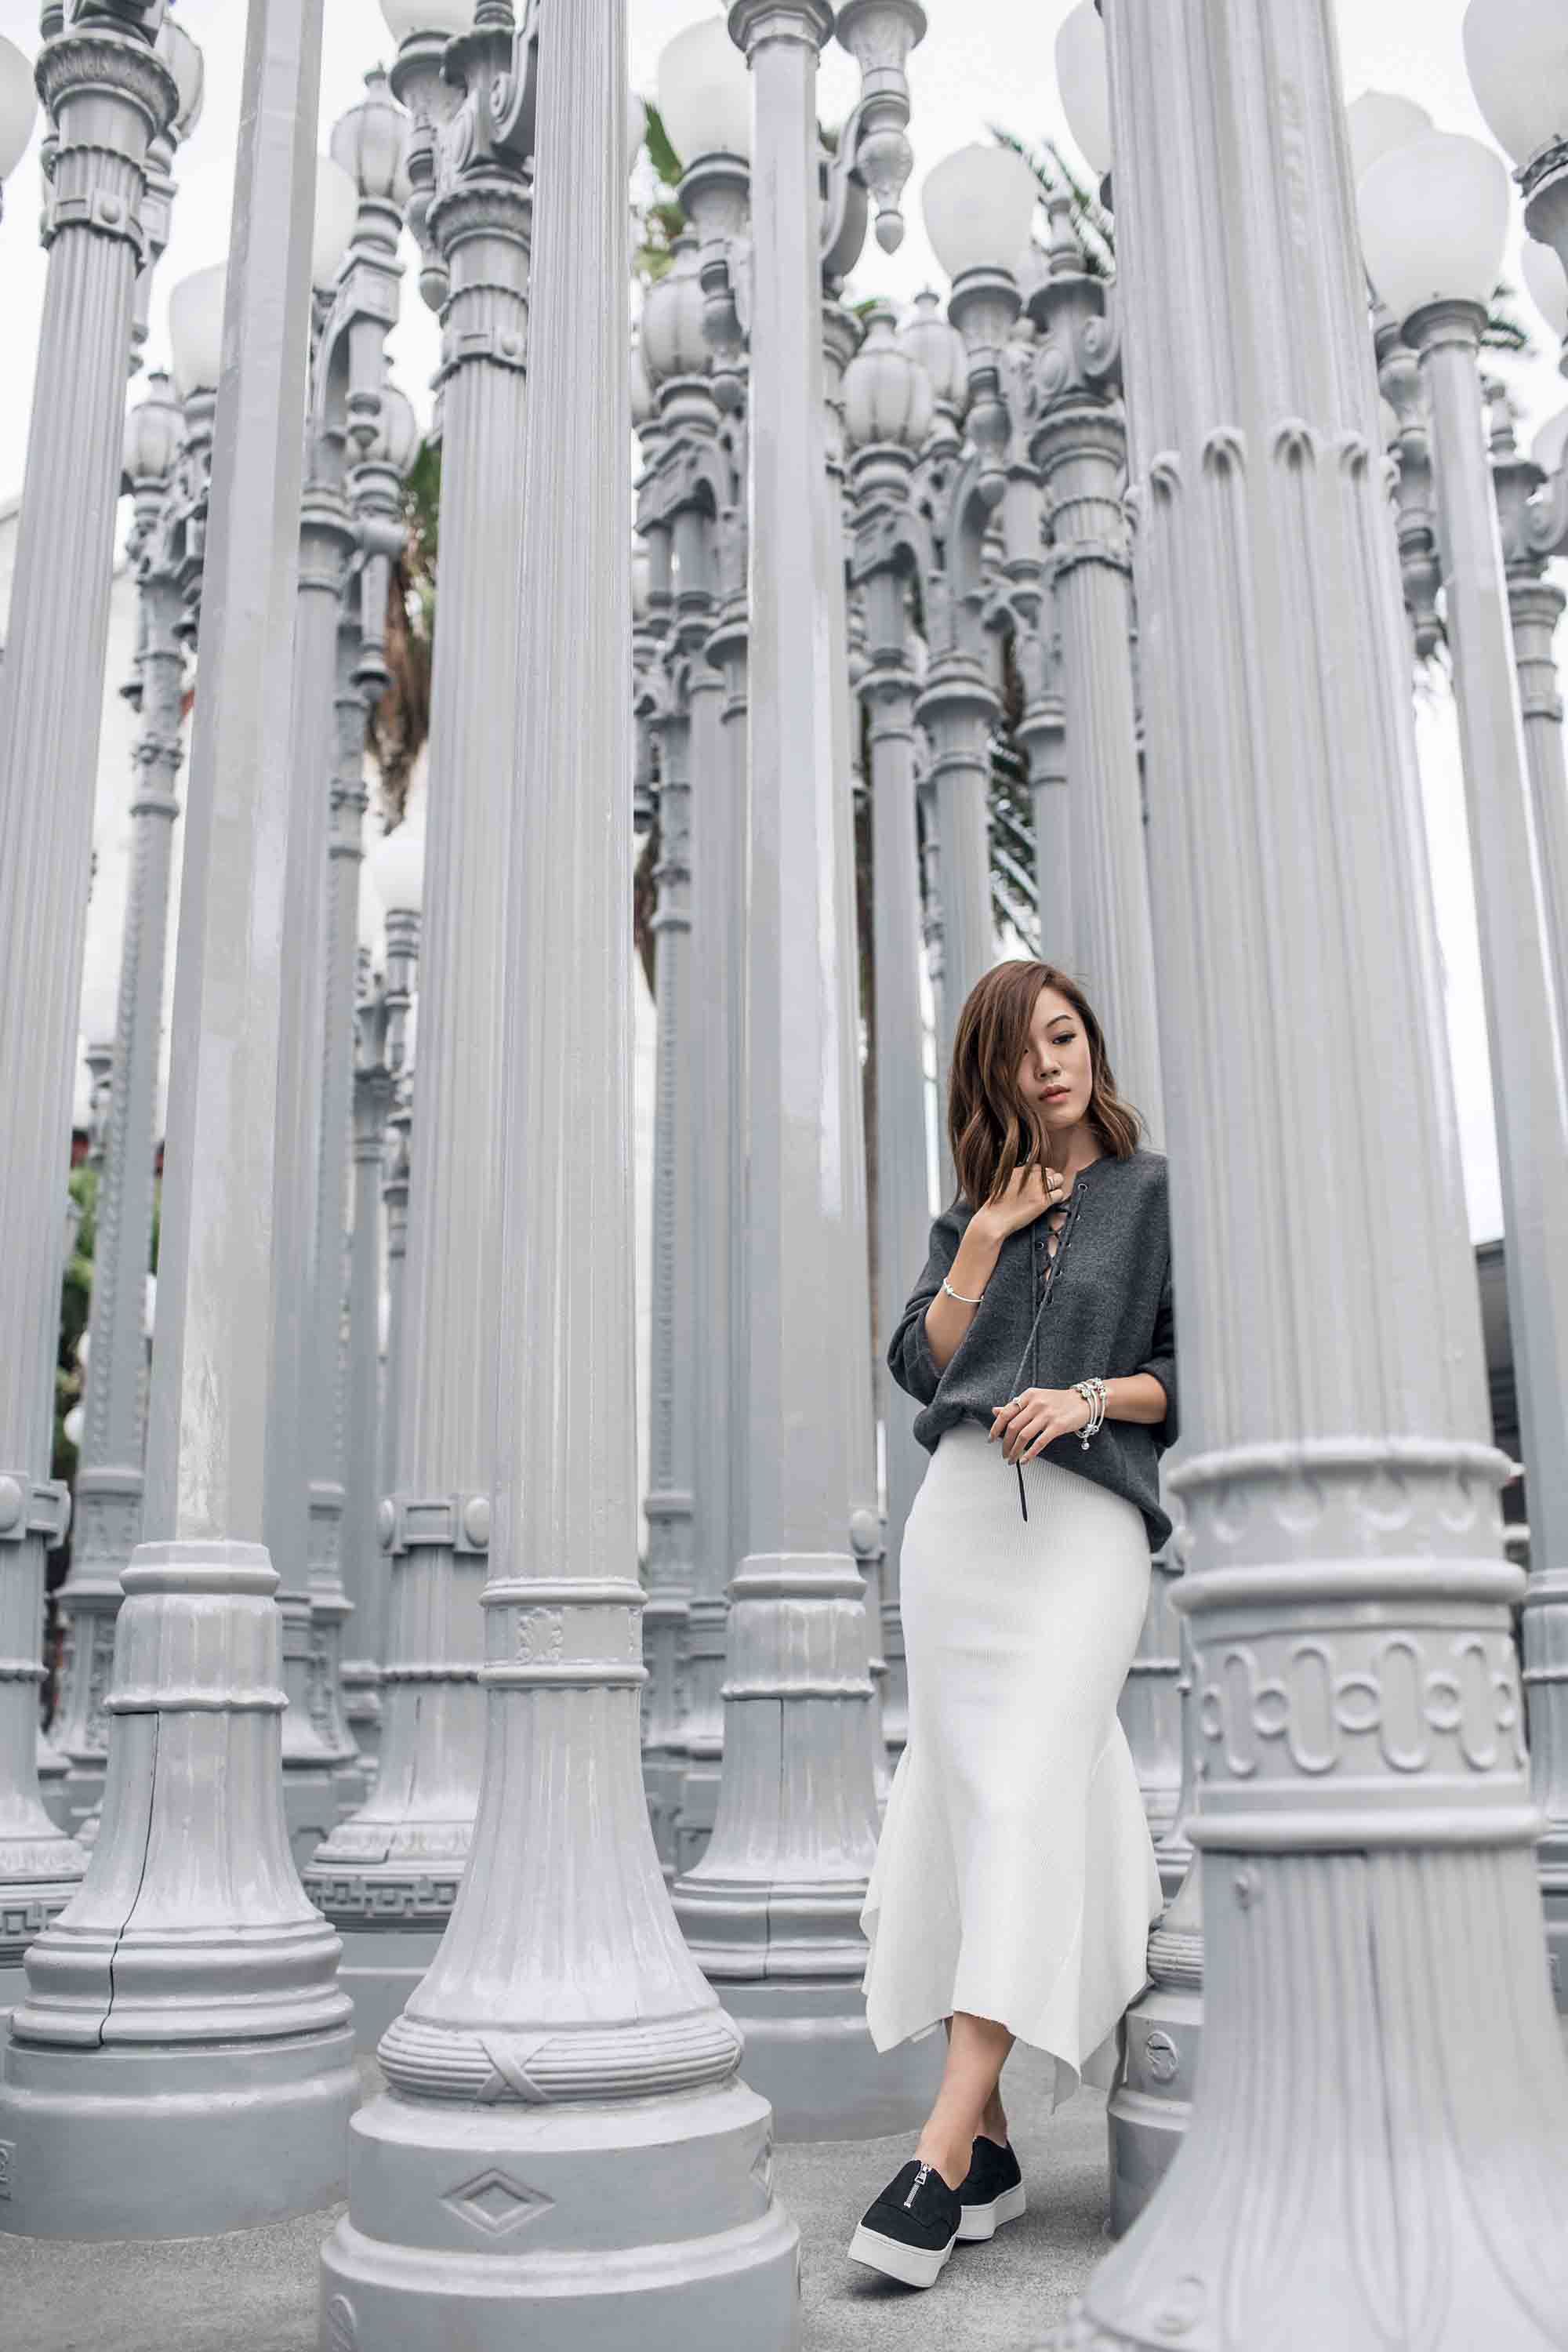 "<p>        ""The Los Angeles County Museum of Art (<a href=""http://www.lacma.org/"" target=""_blank"" data-tracking-id=""recirc-text-link"">LACMA</a>) is one of the prettiest and most romantic spots during the holidays,"" Tsang says. ""I love coming here with friends—and my better half—to visit the museum and, of course, take pictures with the light posts. It's beautiful during the day and just as beautiful at night."" </p>  <p><em data-redactor-tag=""em"" data-verified=""redactor"">PANDORA Jewelry Holiday Collection, price varies, <a href=""http://estore-us.pandora.net/en-us/inspiration/the-holiday-collection/?cid=BrndMedia_Drop6_Dec_2016_MarieClaire_CustomContent_NativeInfluenceArticles_HolidayCollection_InspirationPage"" target=""_blank"" data-tracking-id=""recirc-text-link"">pandora.net</a></em></p>"